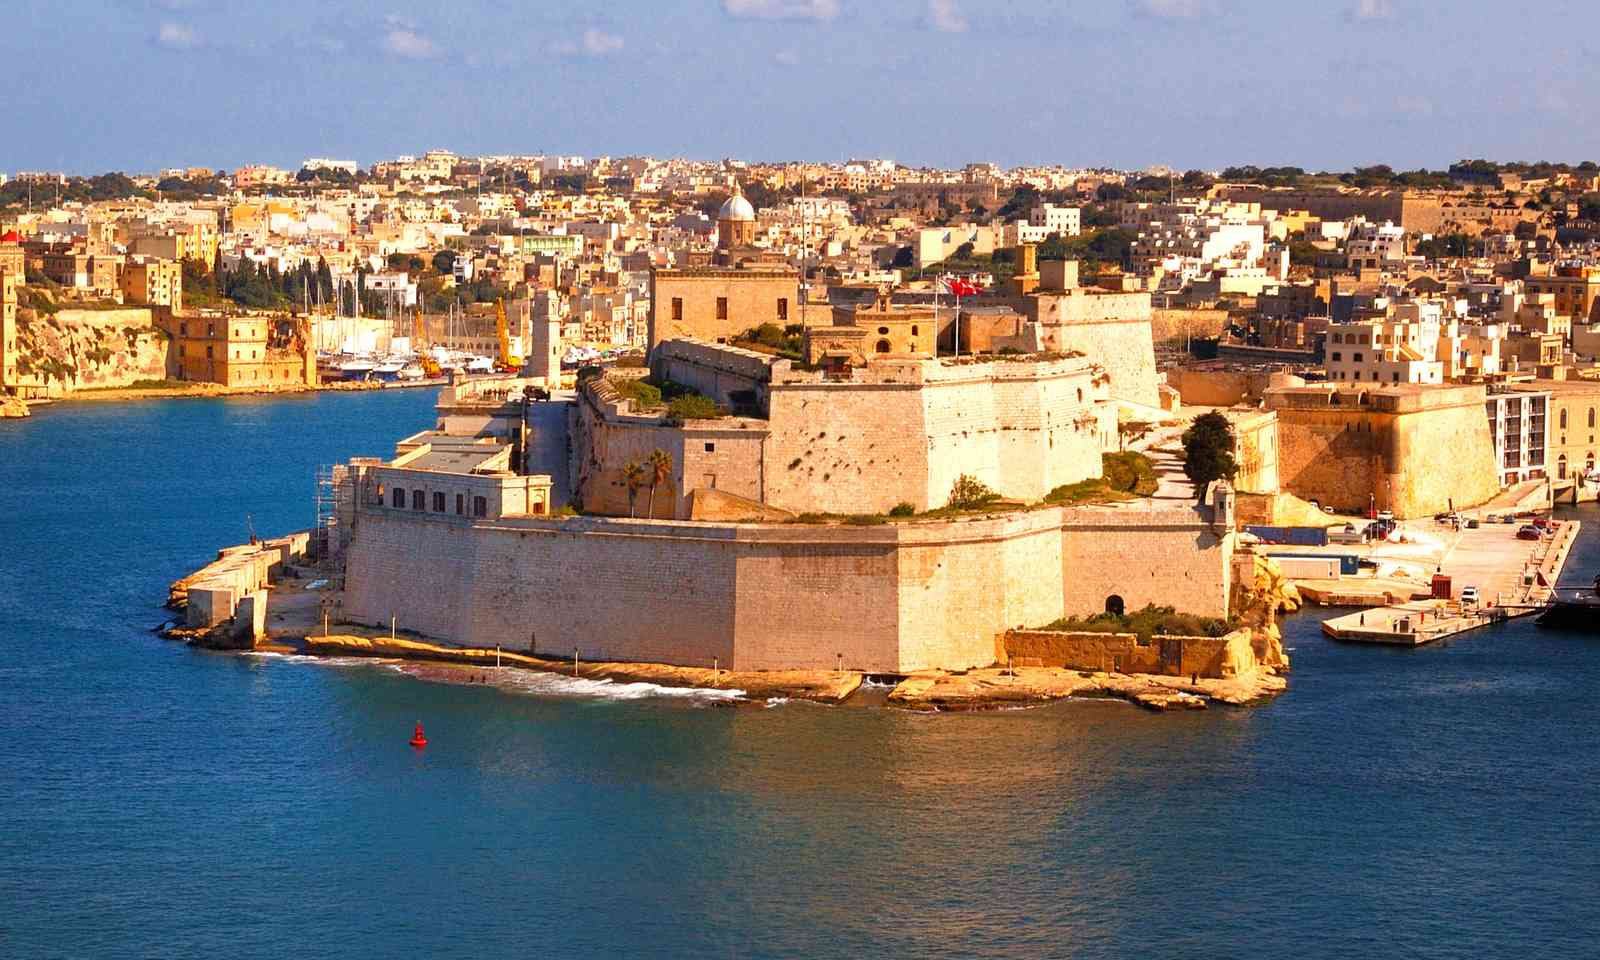 The harbour walls of Valletta (Dreamstime)